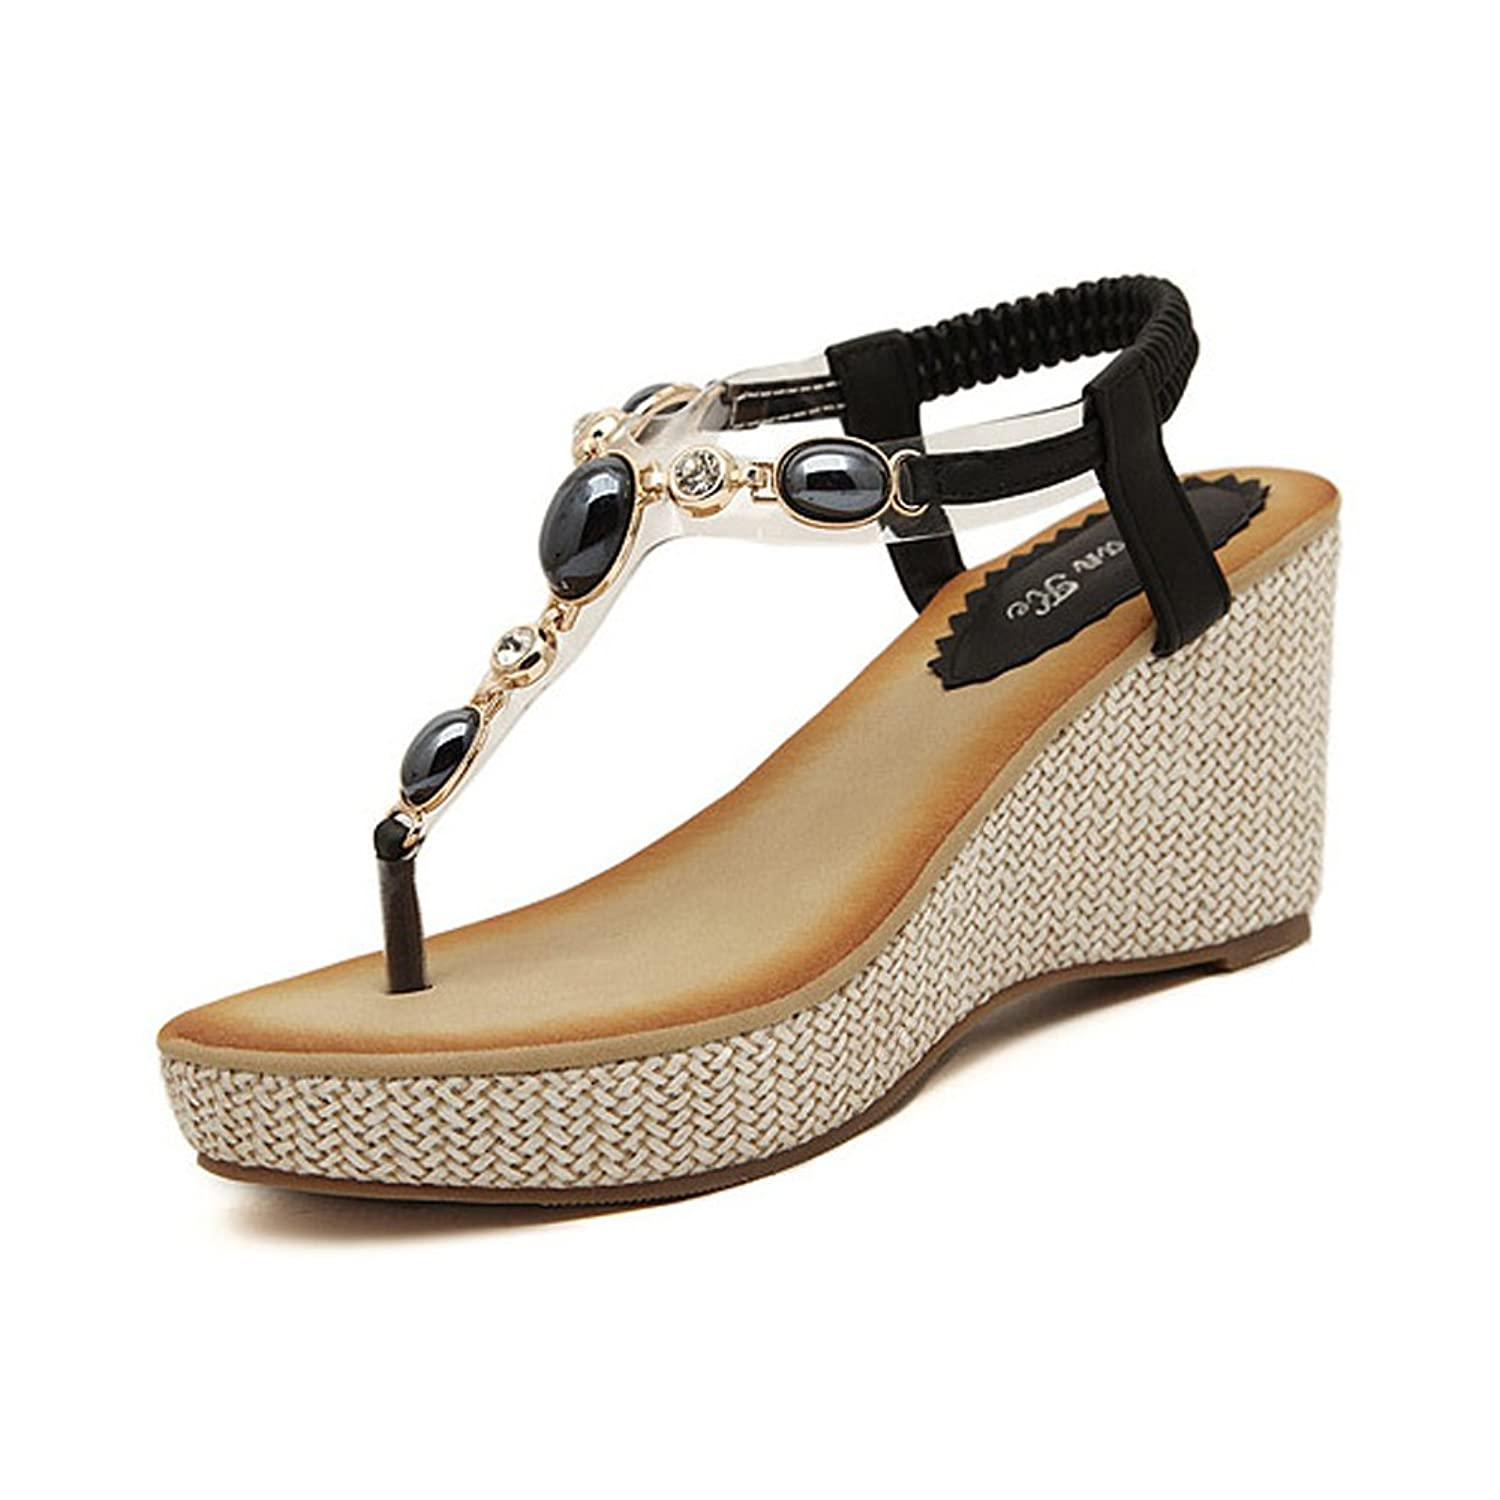 a6426ec36009 DophinGirl Women Summer Wedge Sandals Chic Rhinestone Jewels Chic Sexy  Comfy String Thong T-Strap